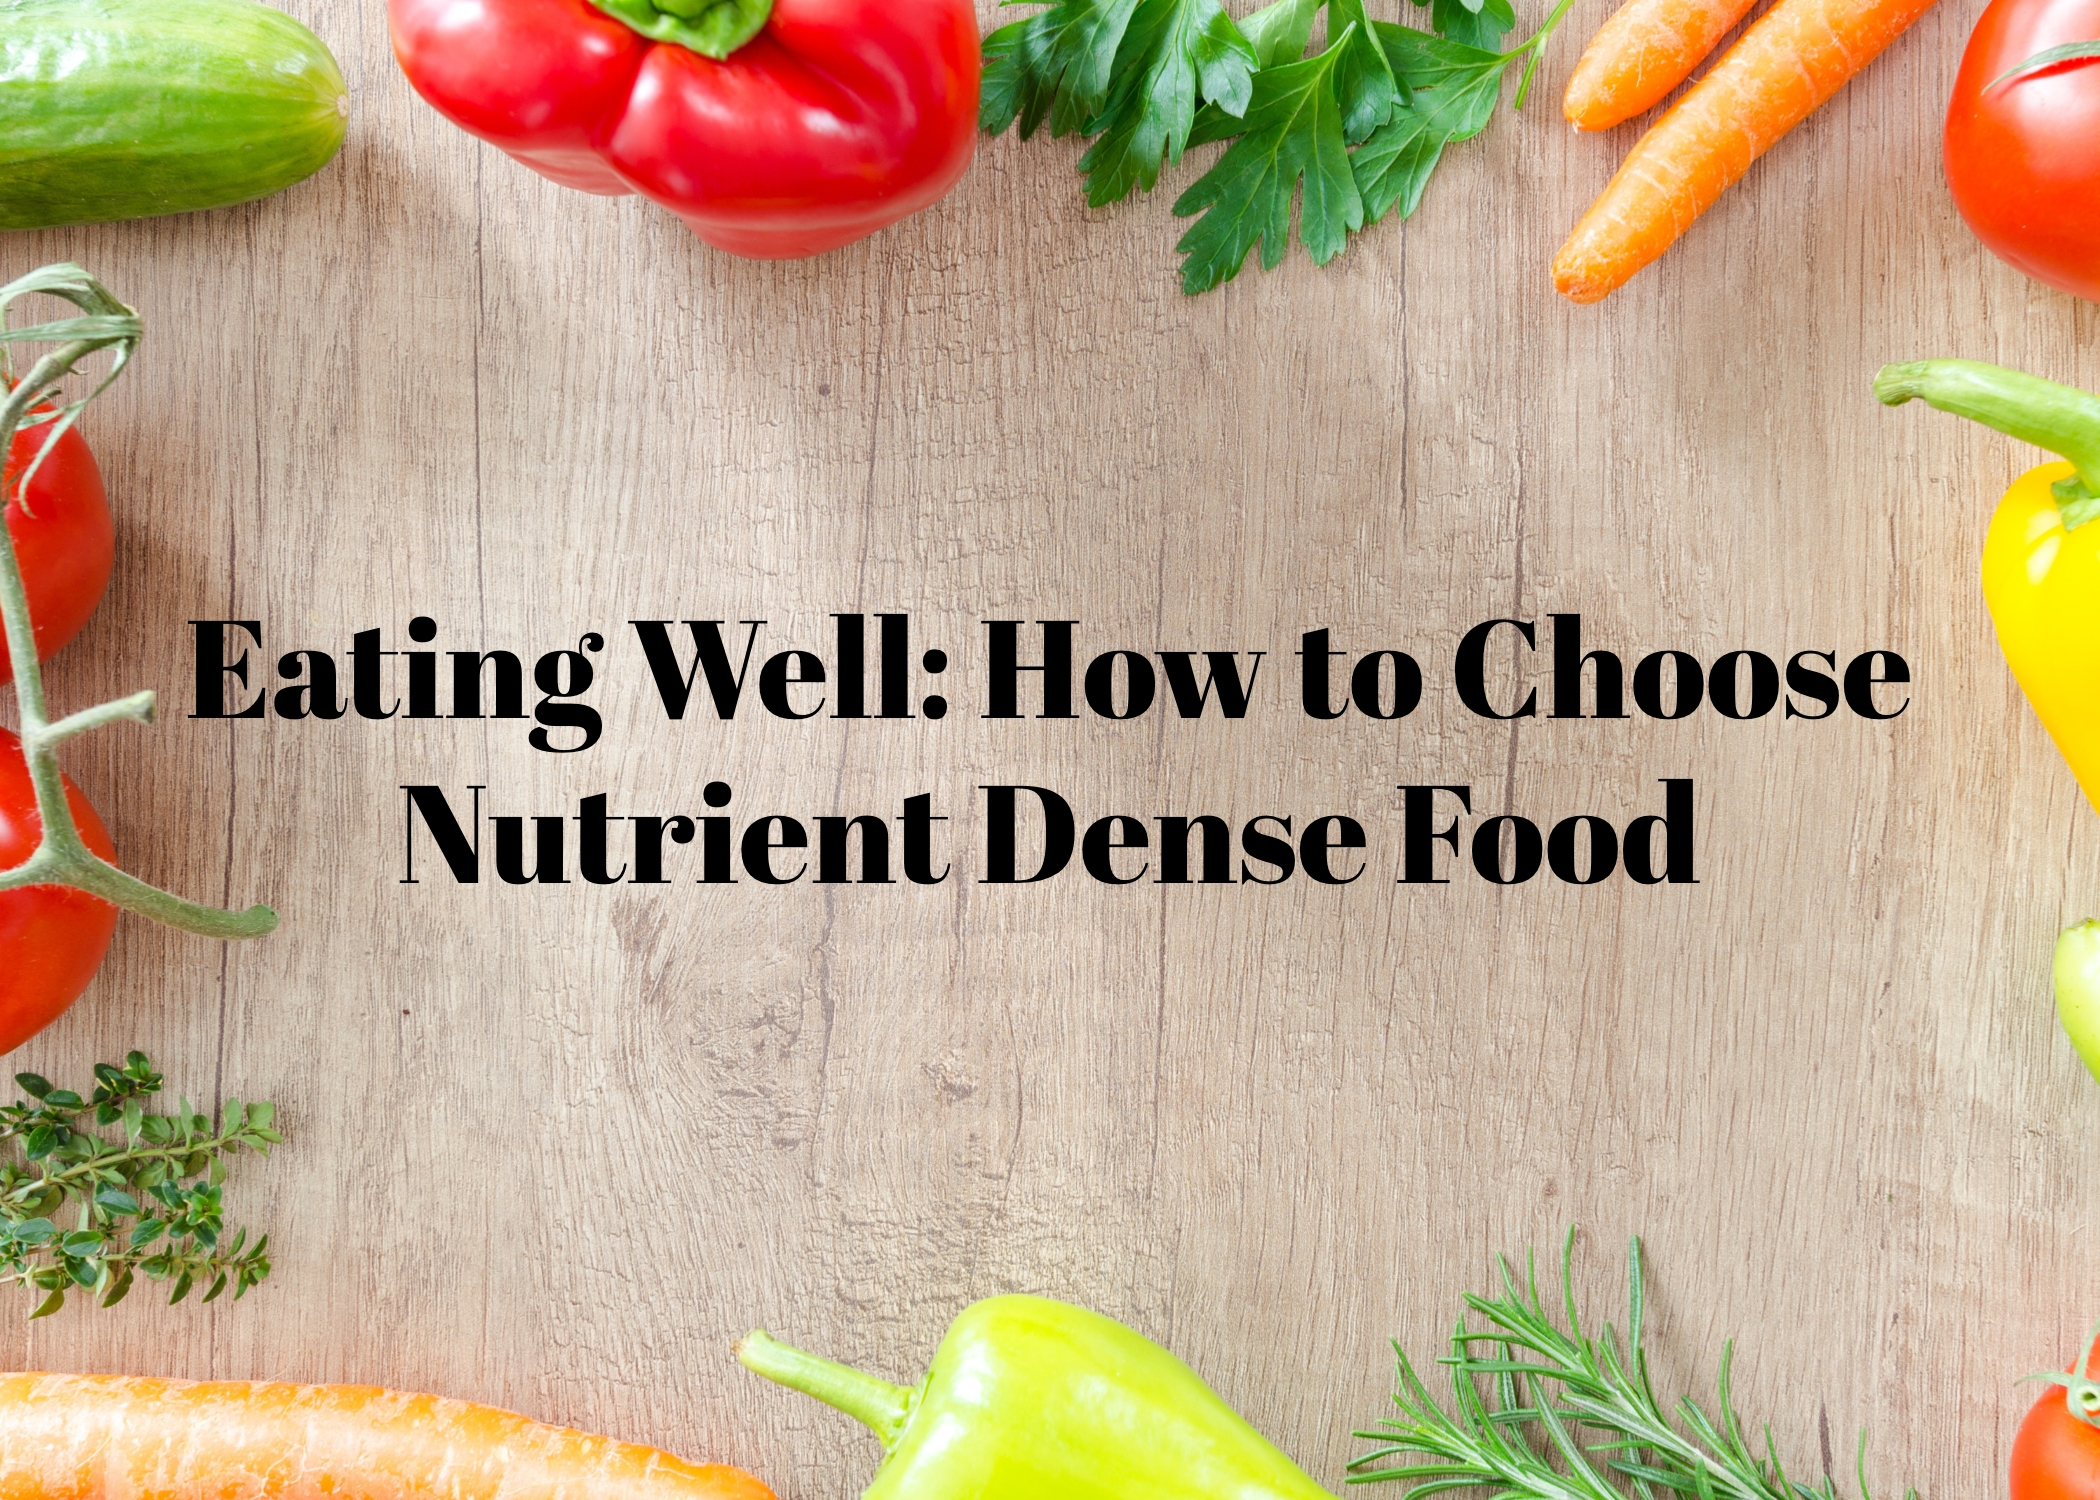 Eating Well How to Choose Nutrient Dense Food